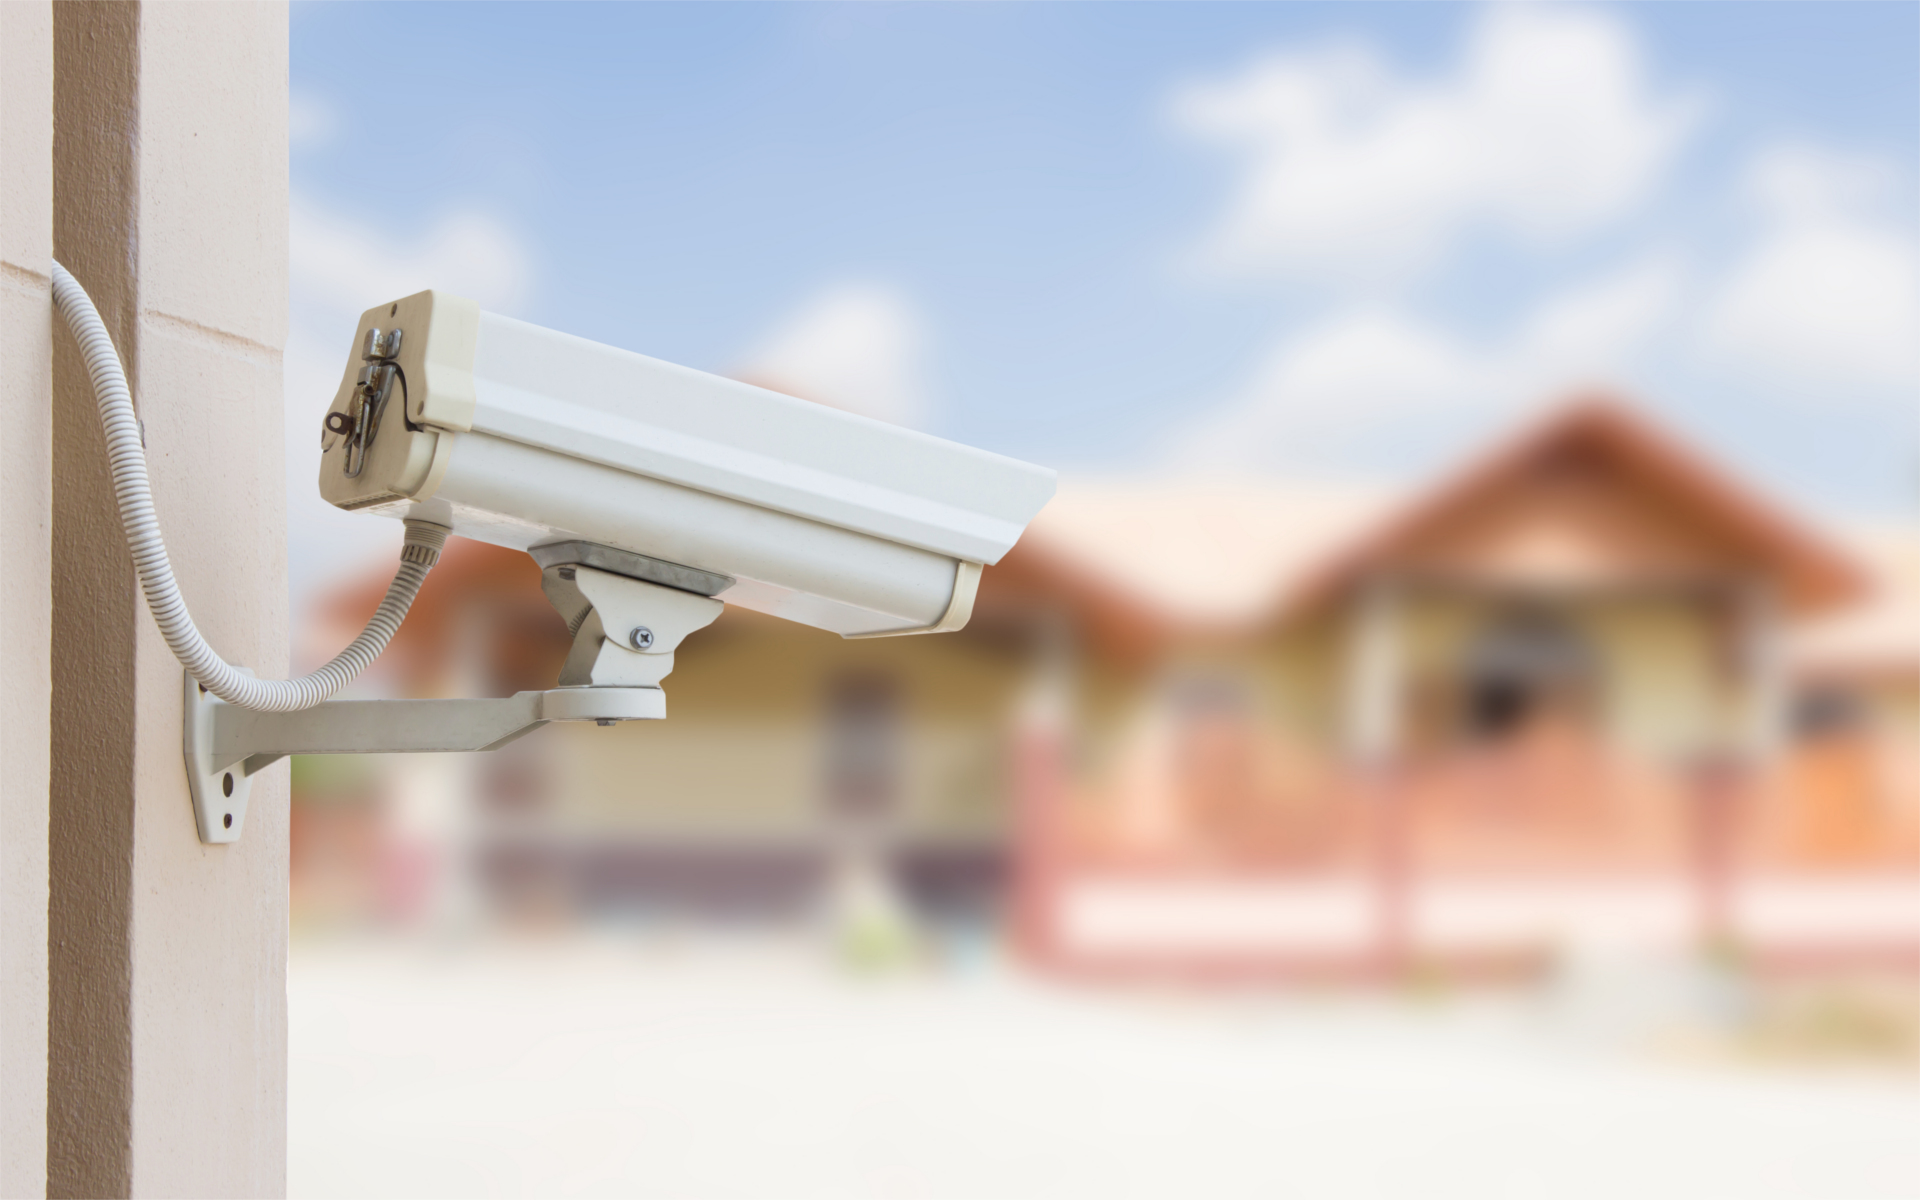 Top Rated Home Security Systems >> Top Rated Home Security Systems For 2017 2018 Voteitup